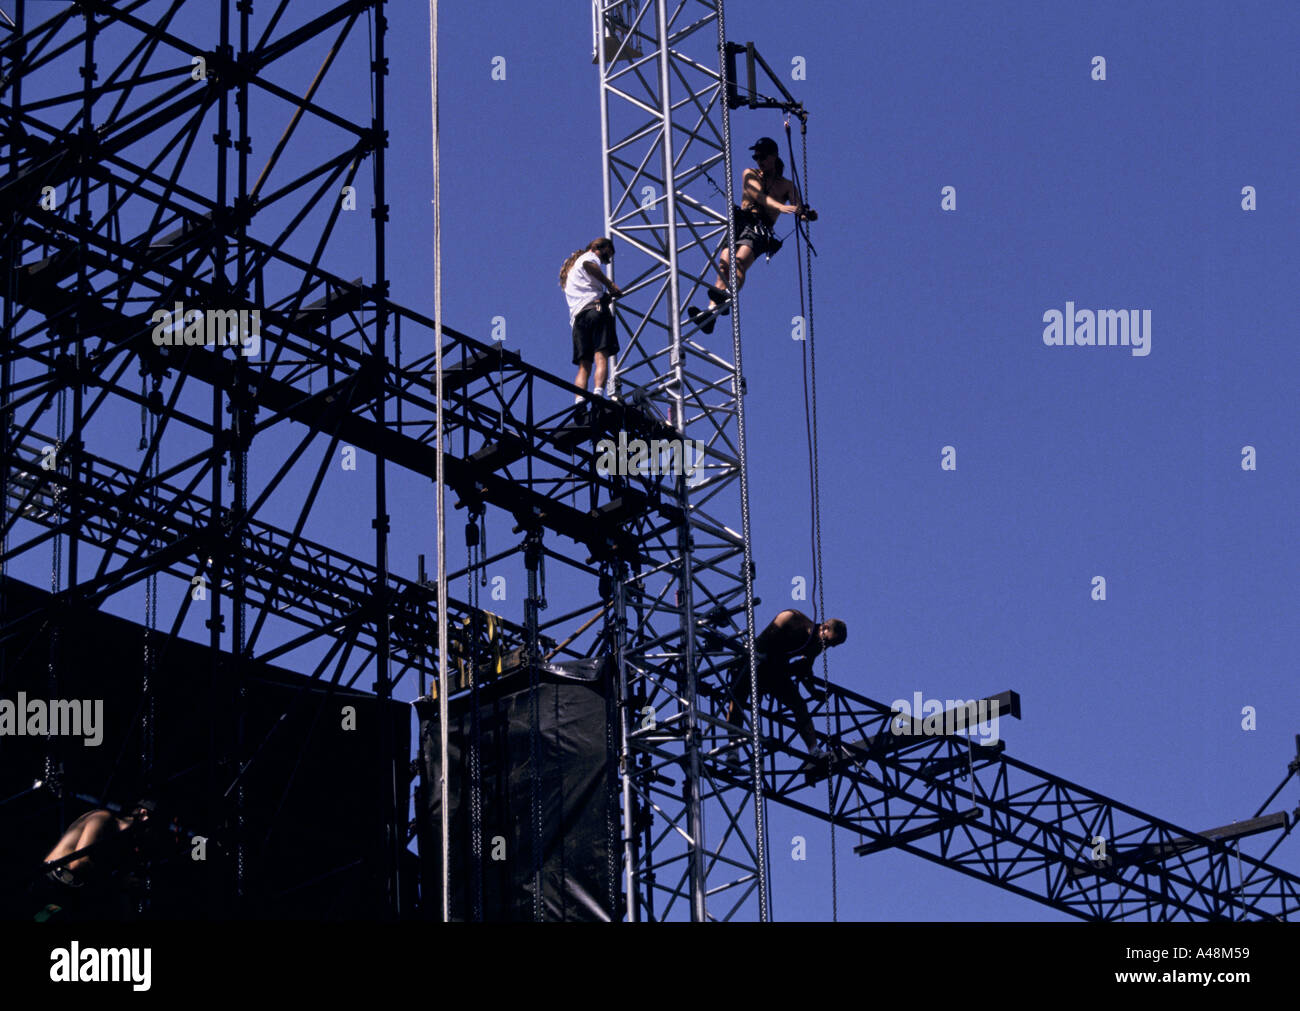 Roadies or riggers building up the stage set for a concert by Irish rock band U2 concert in Geneva Switzerland - Stock Image